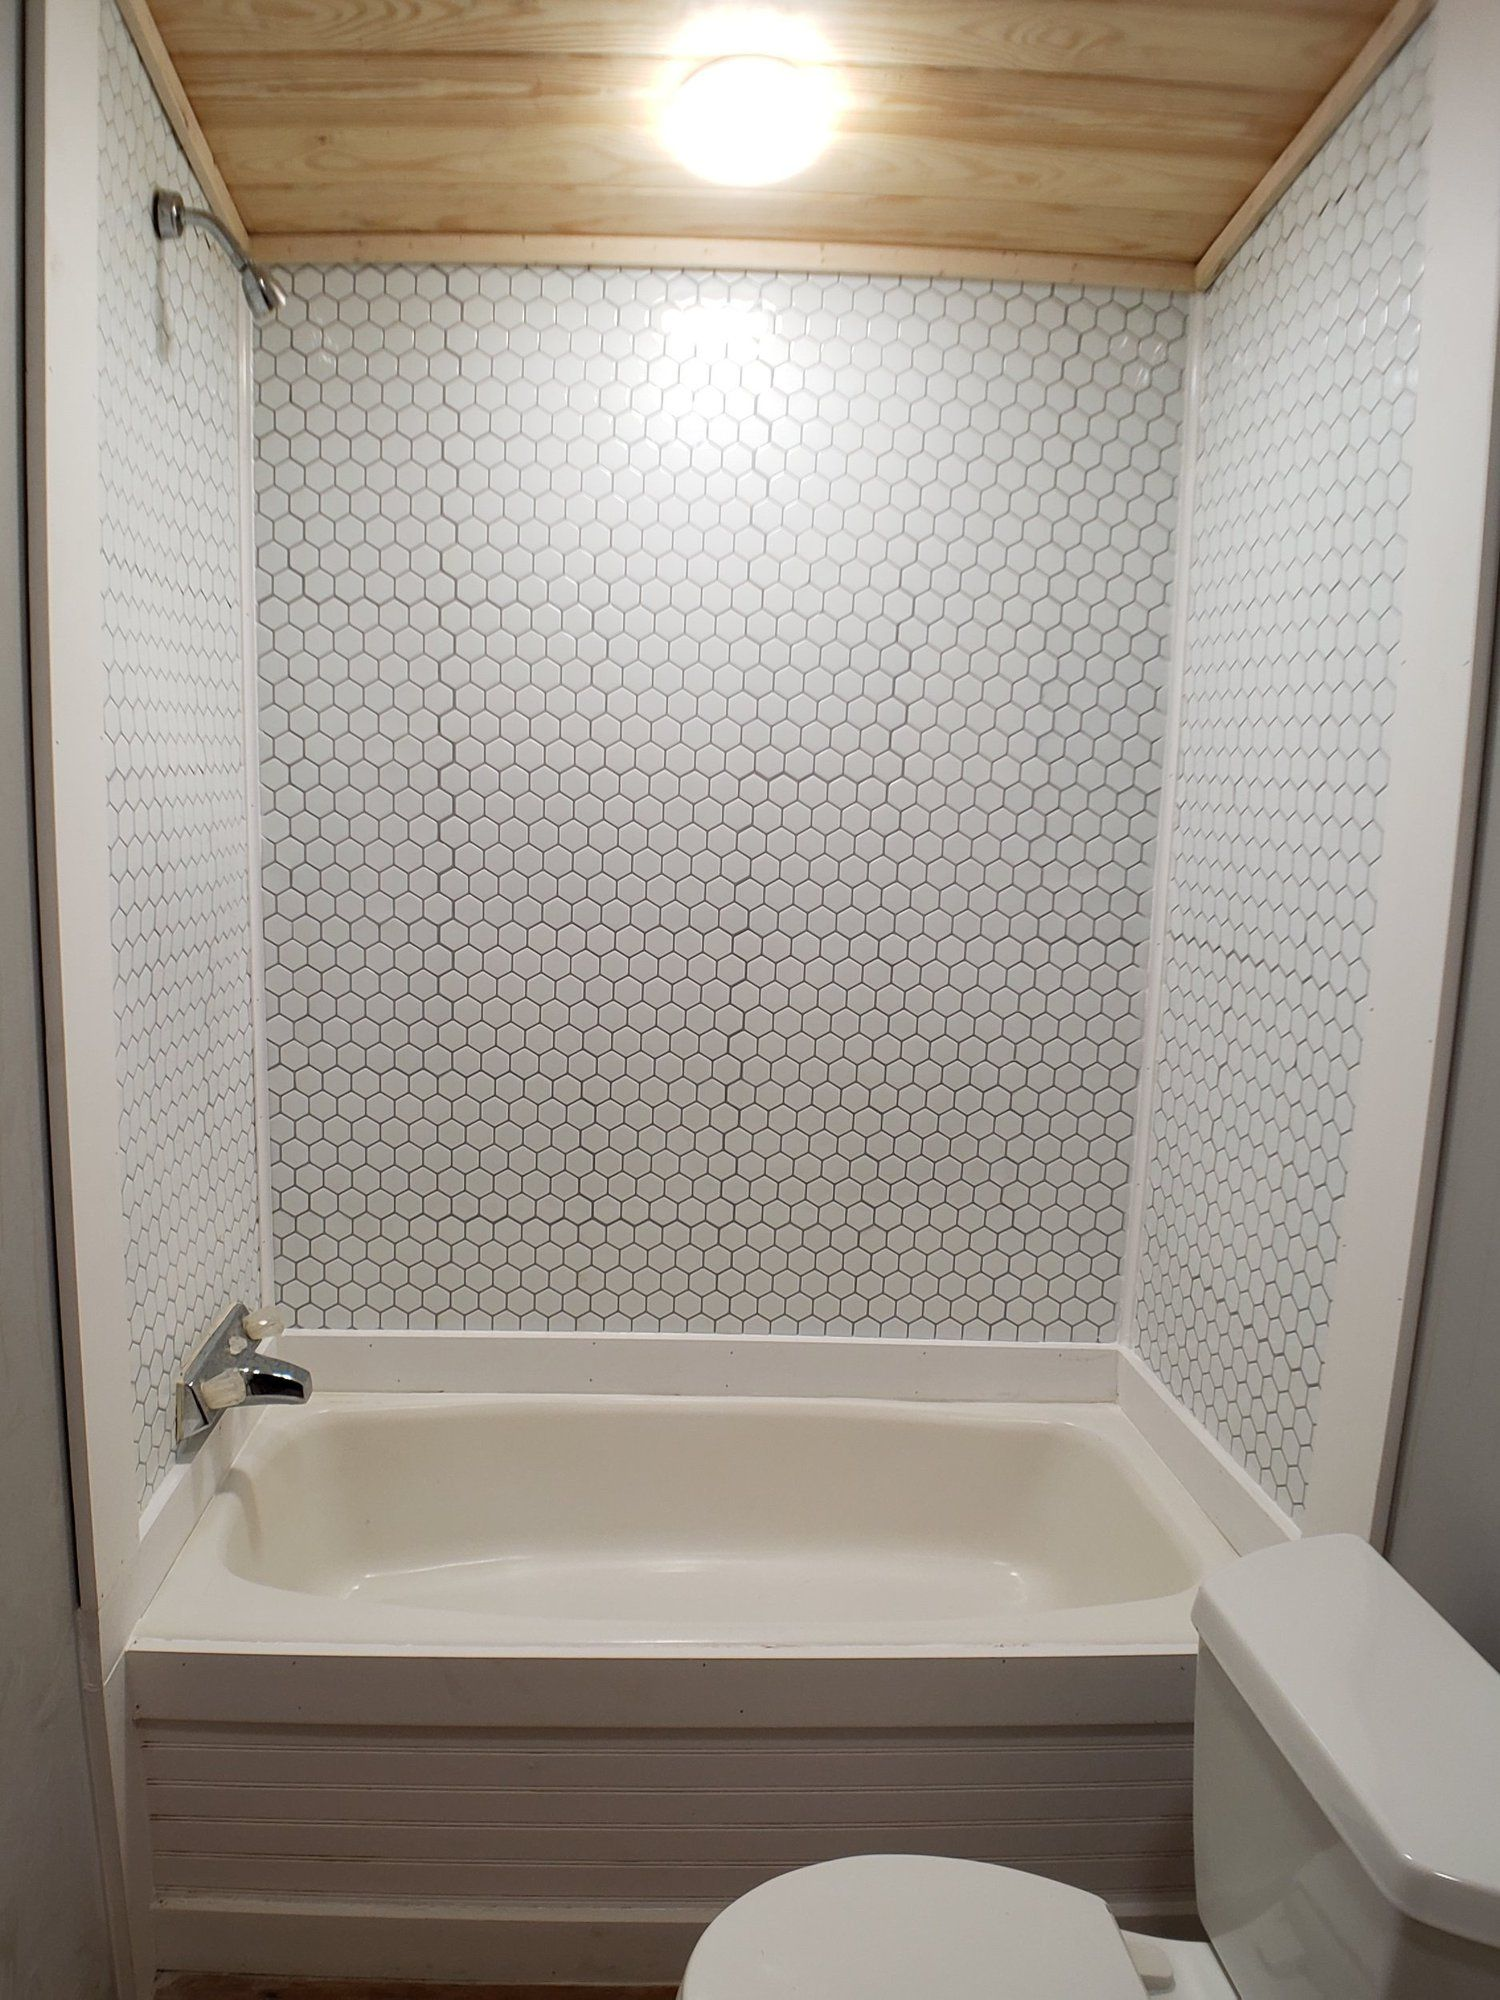 Diy Peel And Stick Tile Shower Peel And Stick Tile Stick On